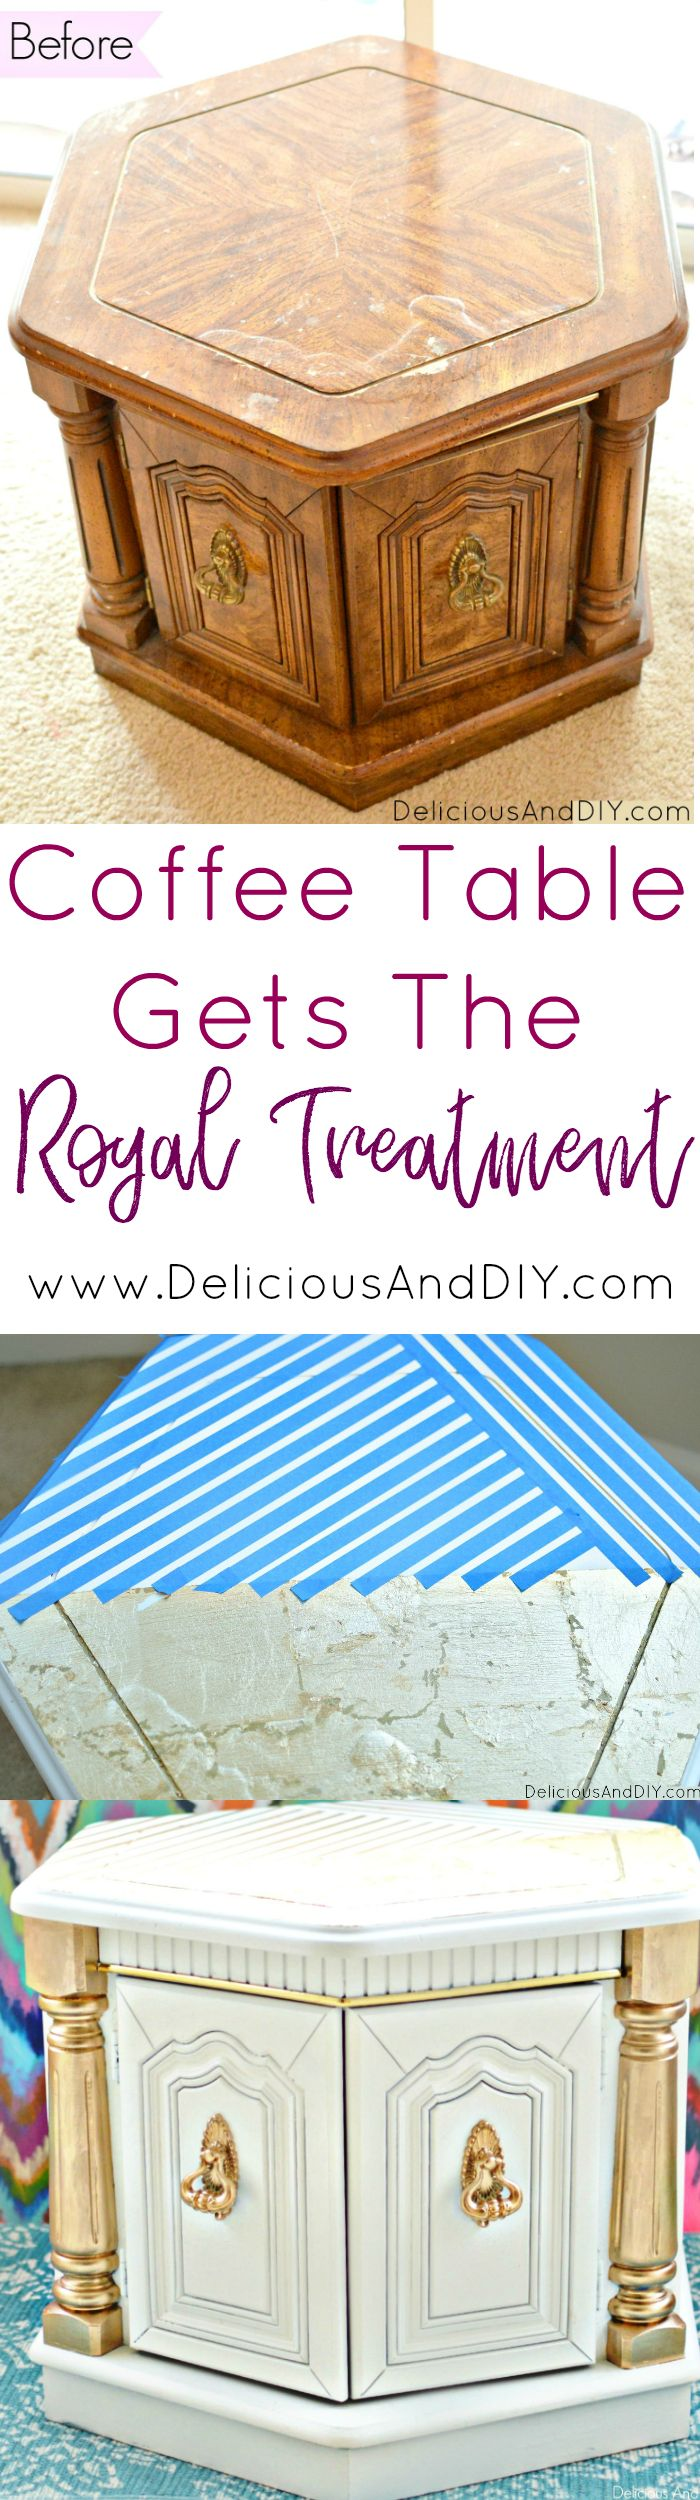 Learn how to paint your old furniture and give it the Royal Treatment| Give a fl...